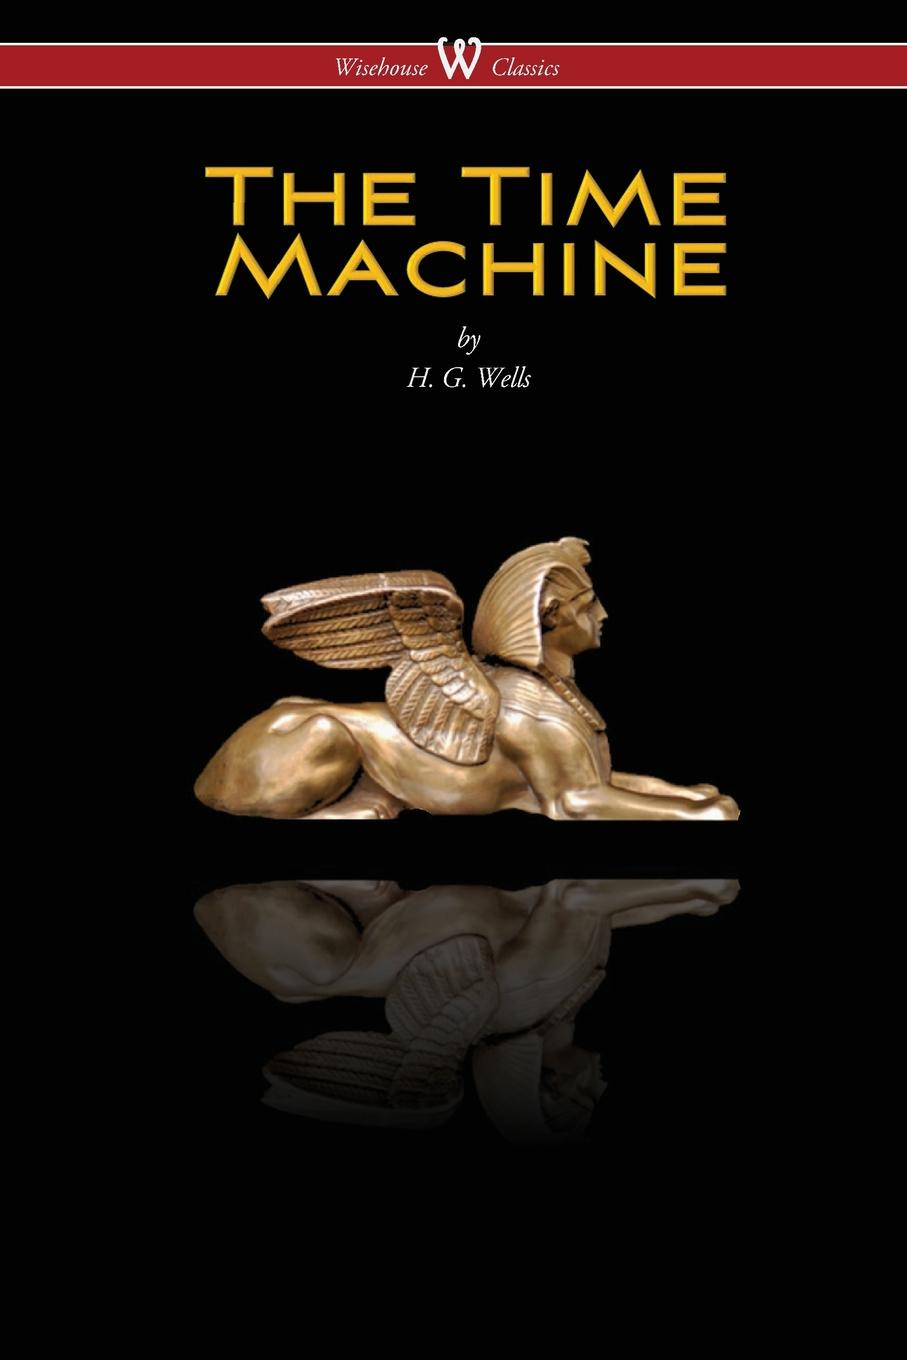 H. G. Wells The Time Machine (Wisehouse Classics Edition)